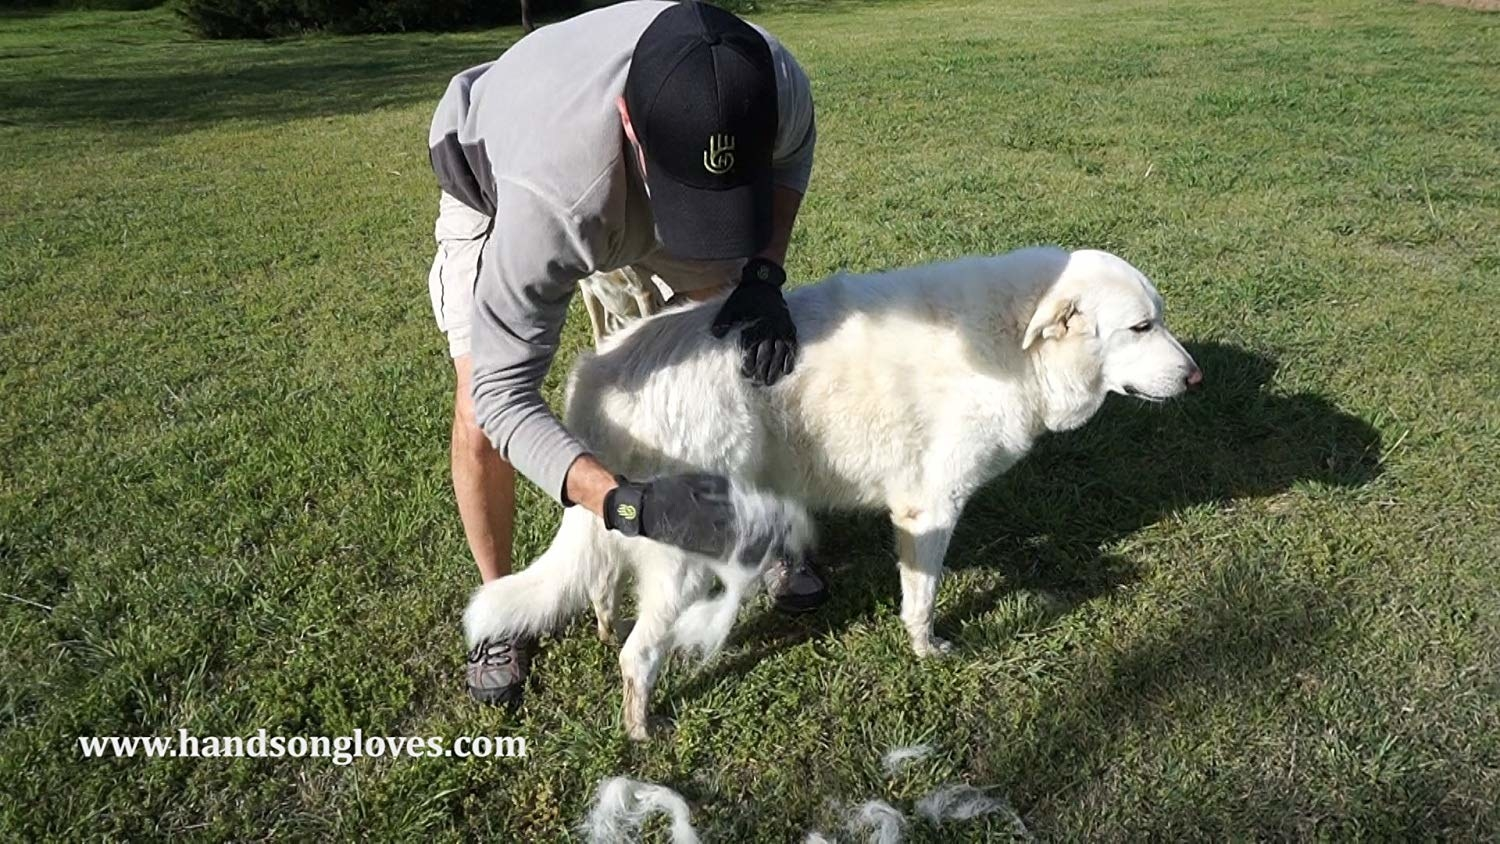 A dog being brushed with the gloves, with clumps of hair coming off